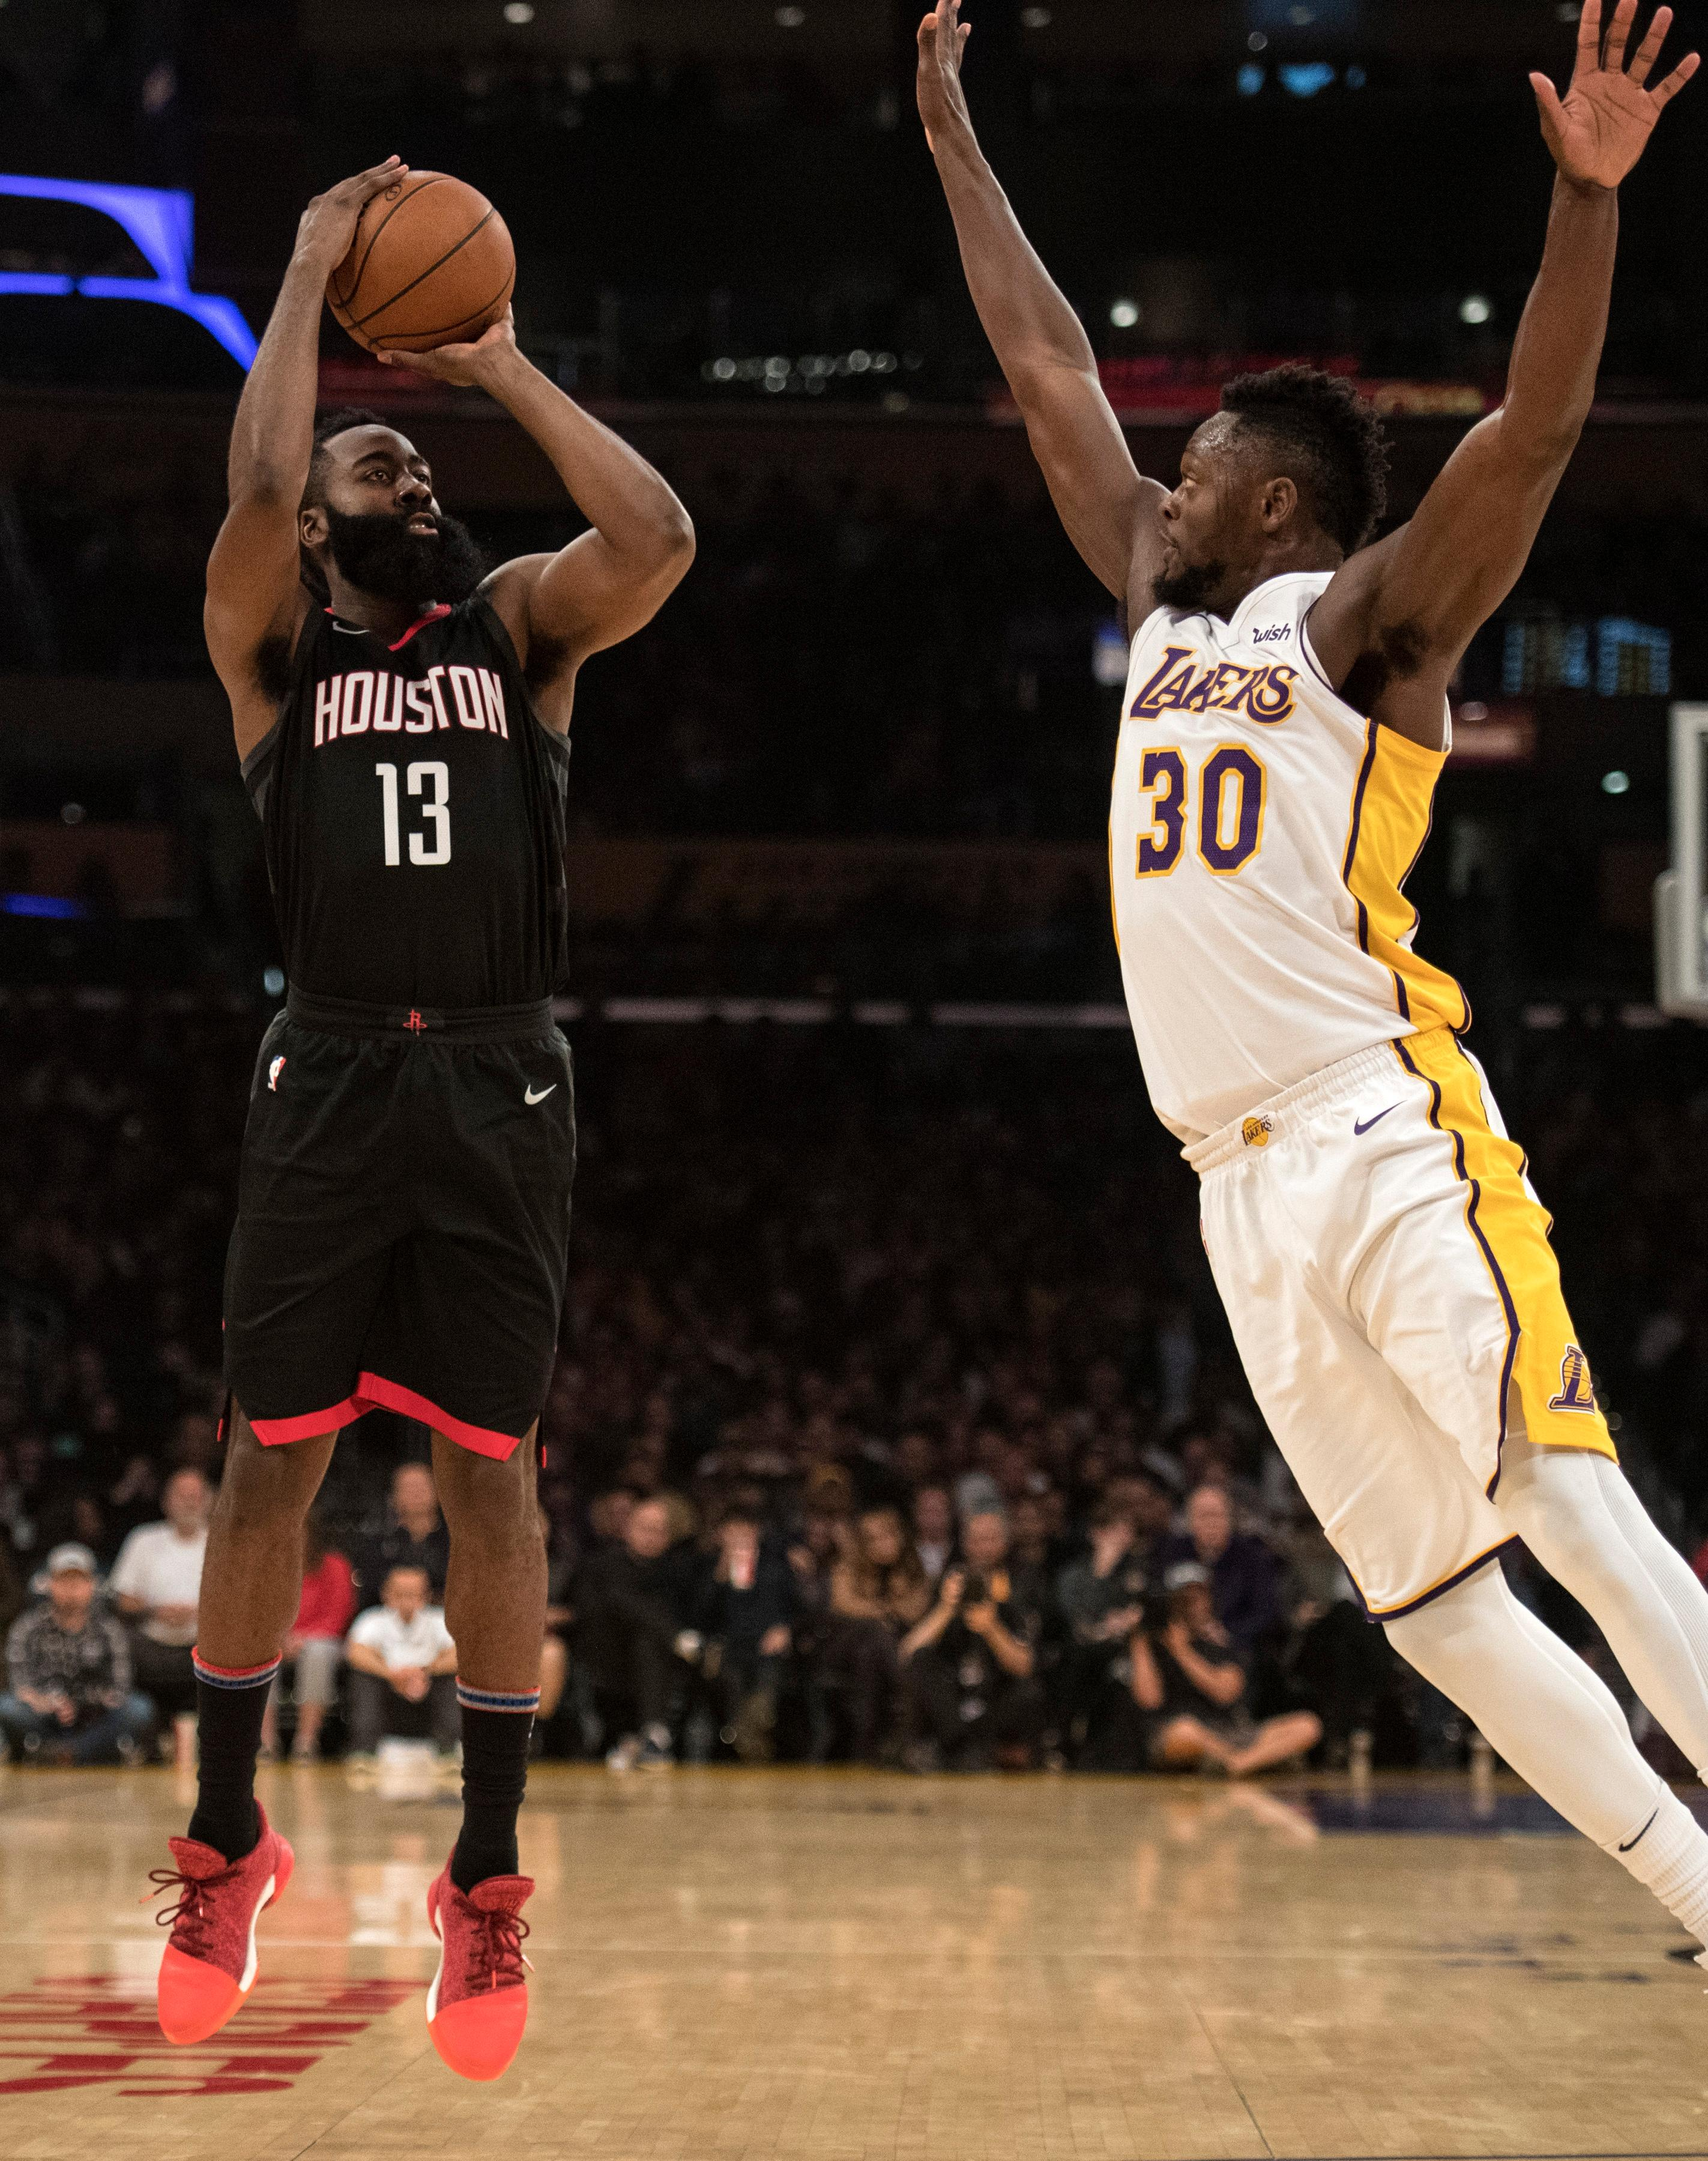 Houston Rockets guard James Harden shoots a 3-pointer over Los Angeles Lakers forward Julius Randle (30) during the first half of an NBA basketball game Sunday, Dec. 3, 2017, in Los Angeles. (AP Photo/Kyusung Gong)